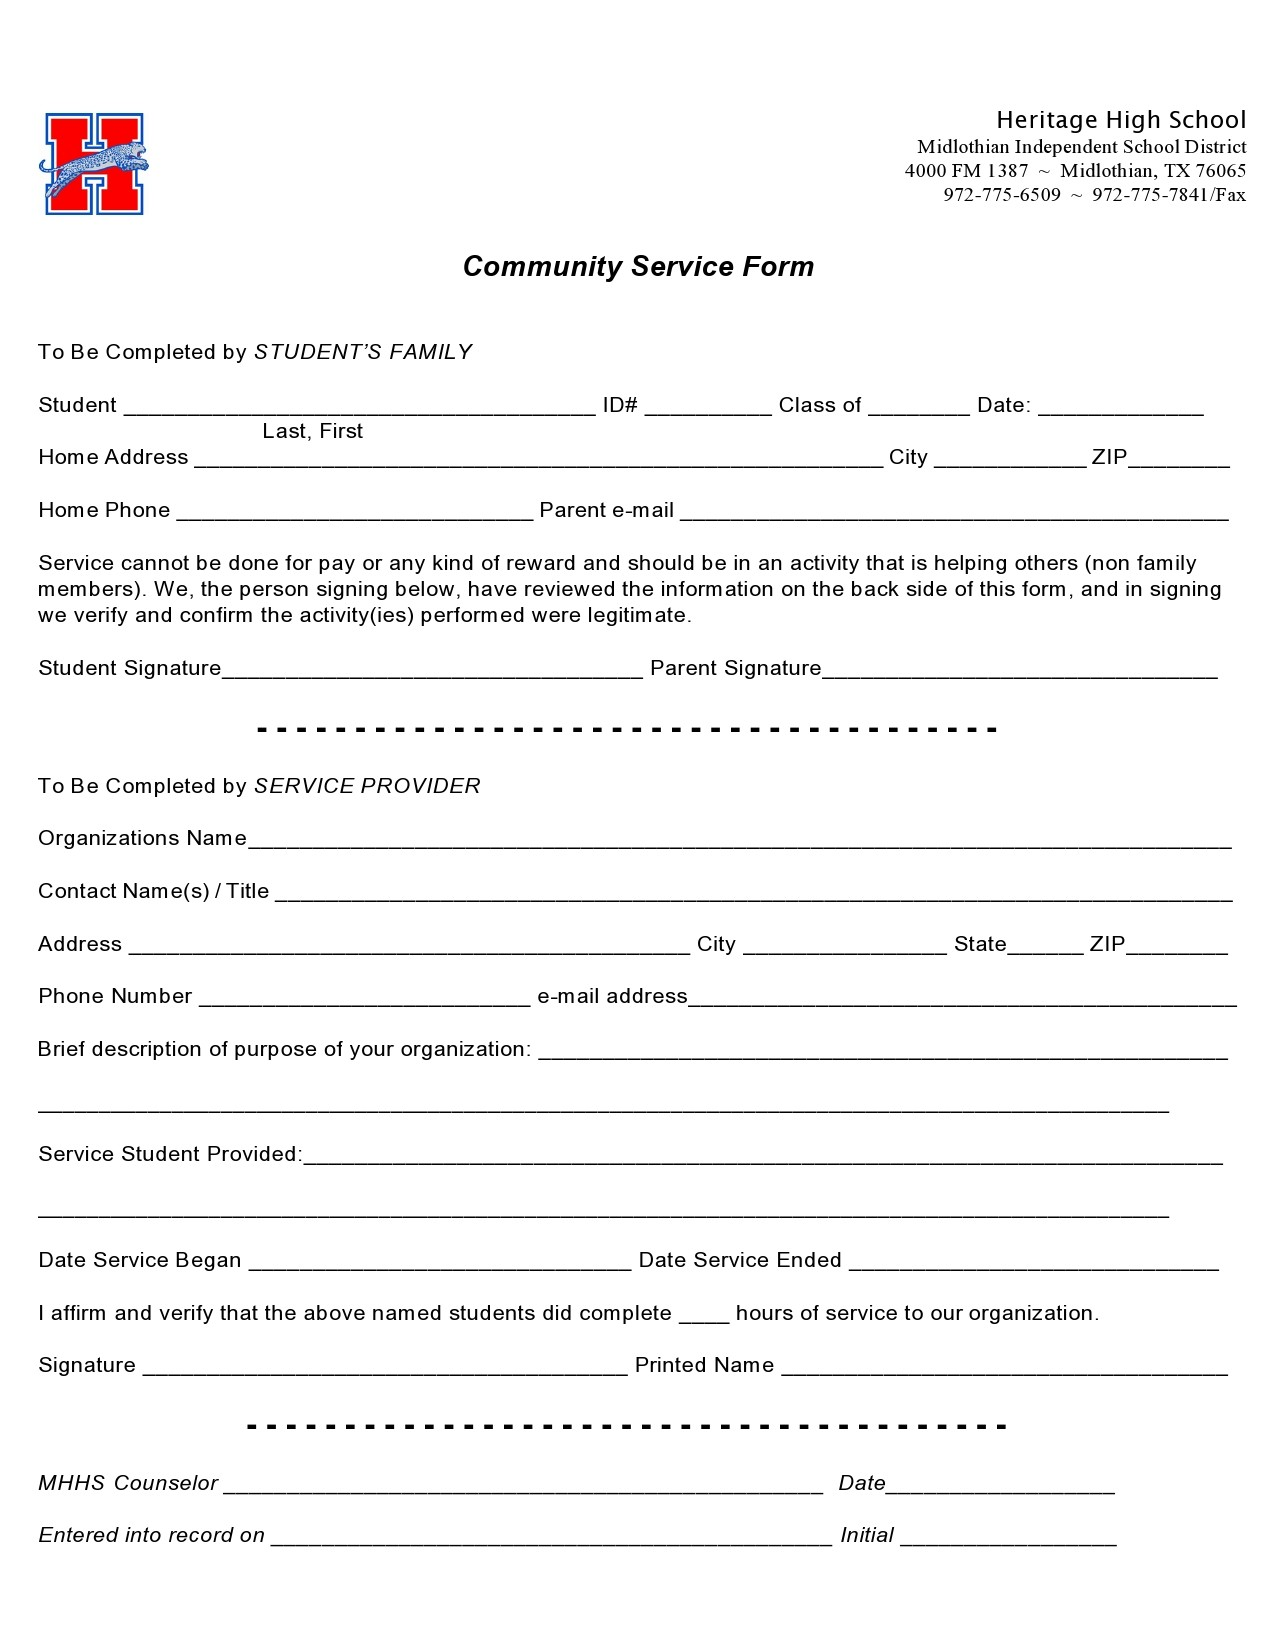 Free community service form 40